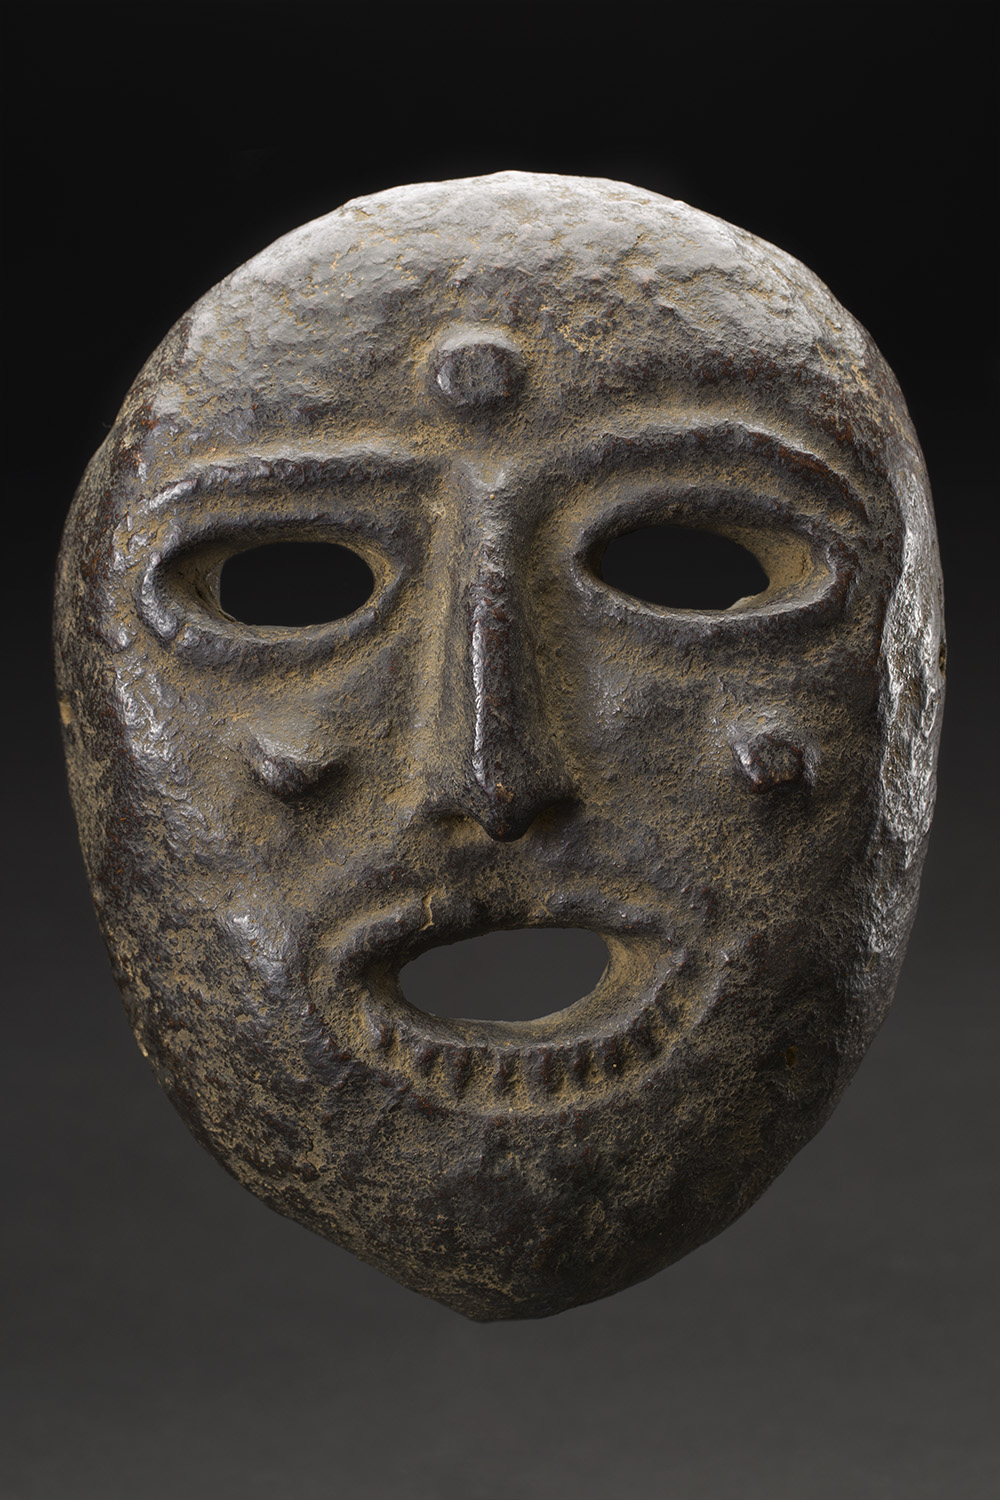 Masks    Nepal  , Early 20th C. Cow dung, clay, organic materials 11 x 8.5 x 3 inches 27.9 x 21.6 x 7.6 cm M 226